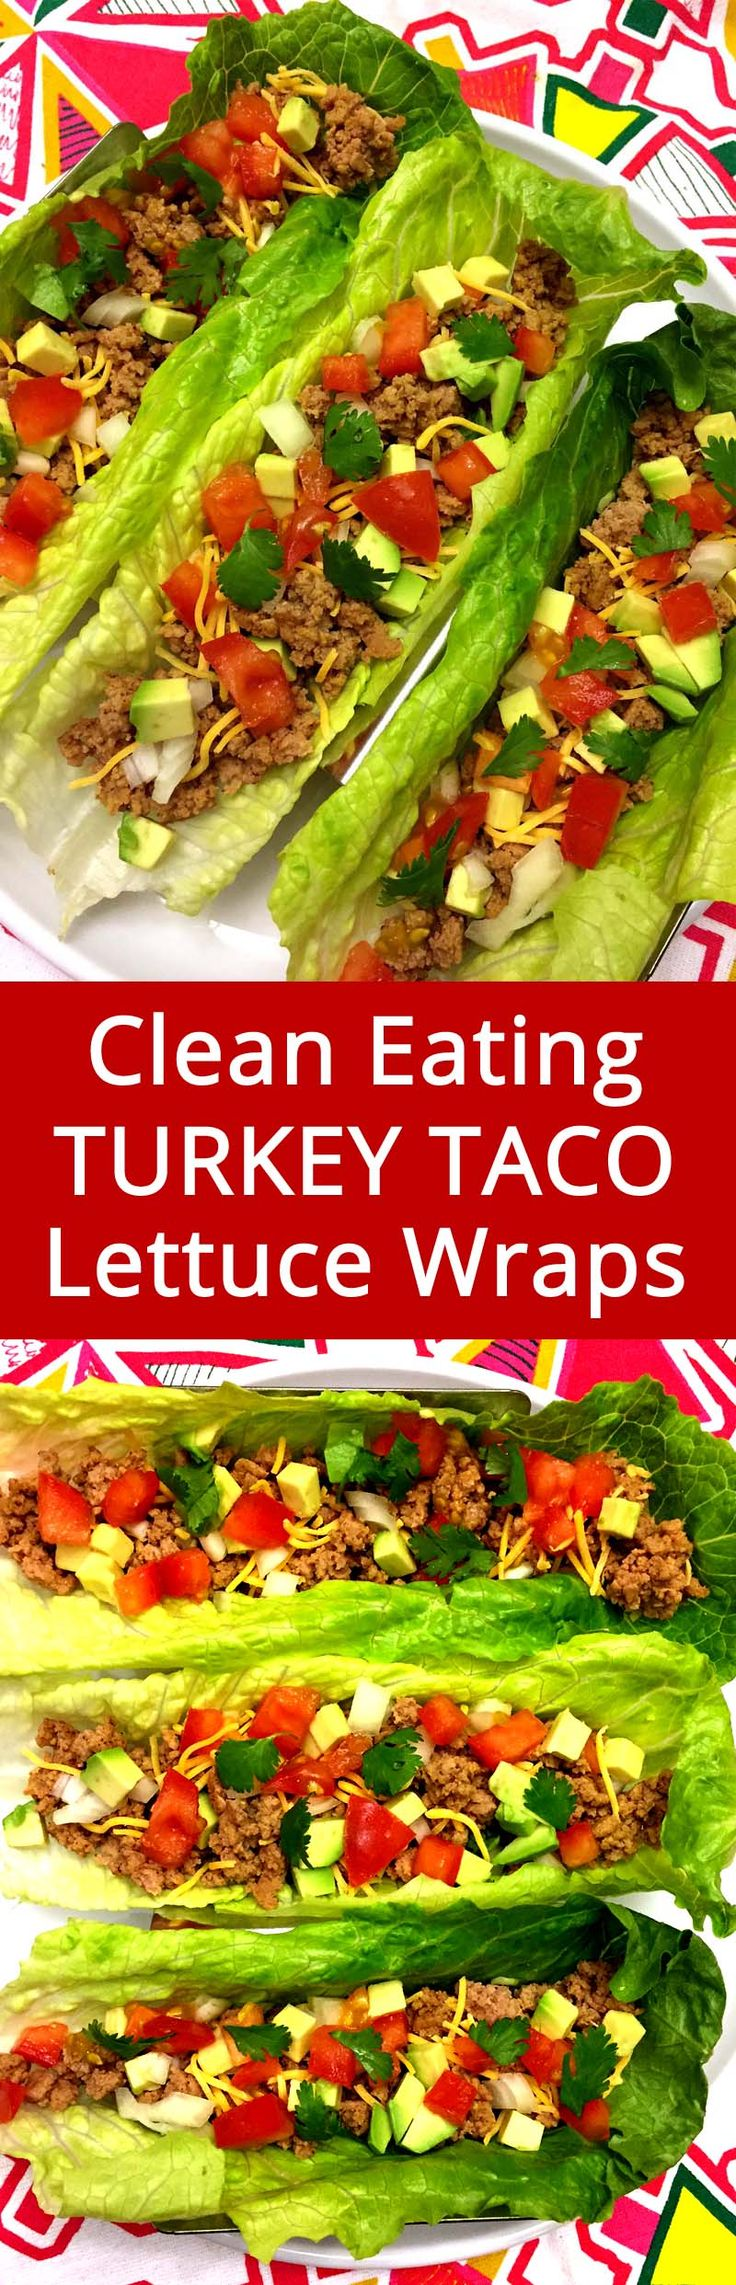 These turkey taco lettuce wraps are so fresh, healthy and delicious! It's one of my favorite clean eating recipes!